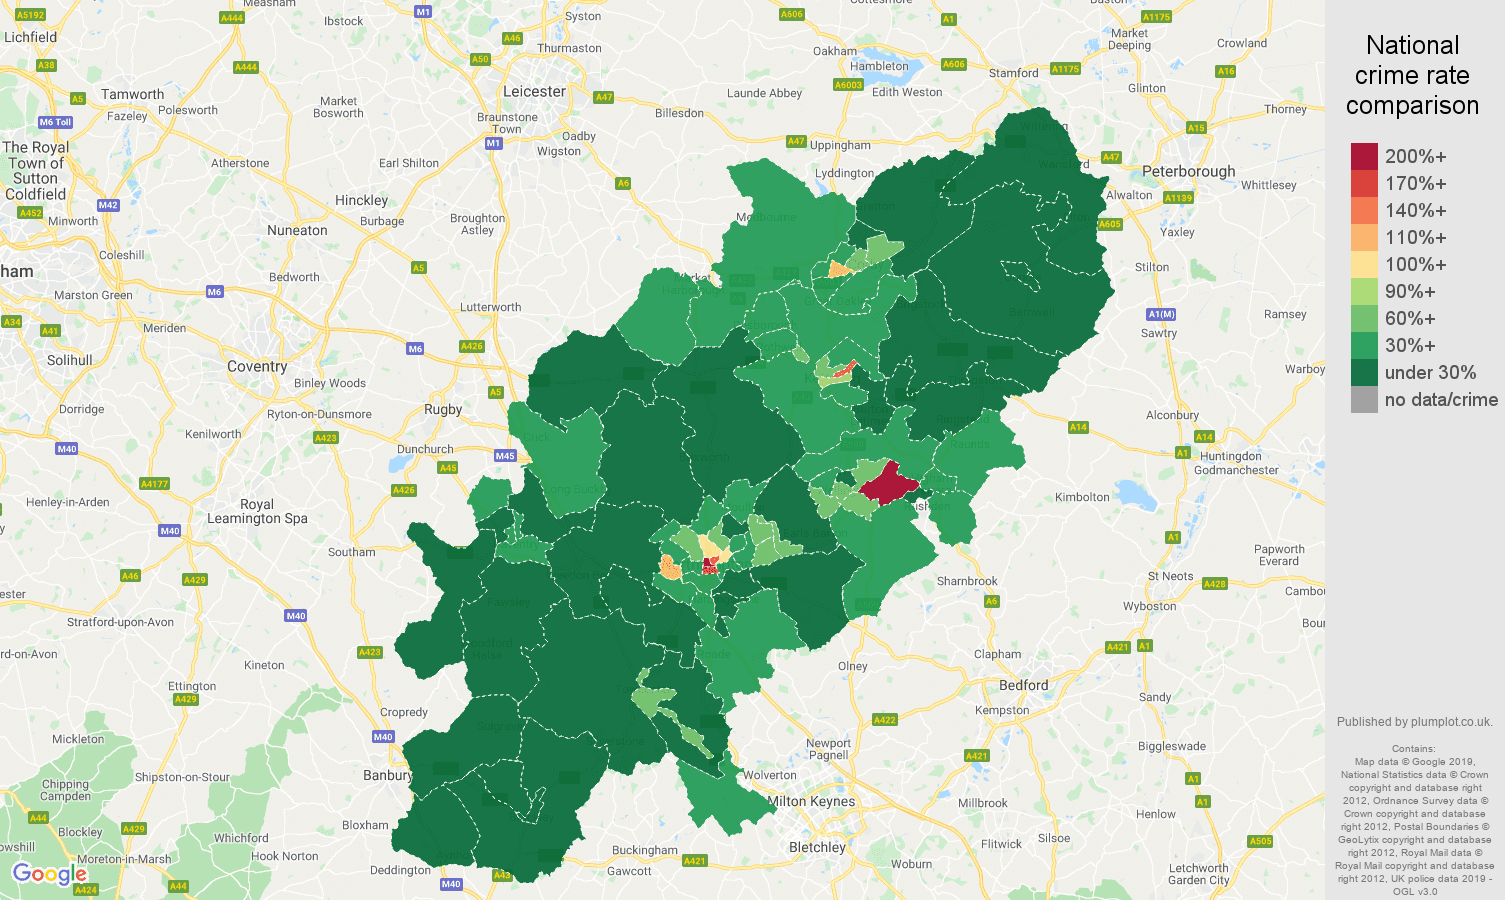 Northamptonshire public order crime rate comparison map